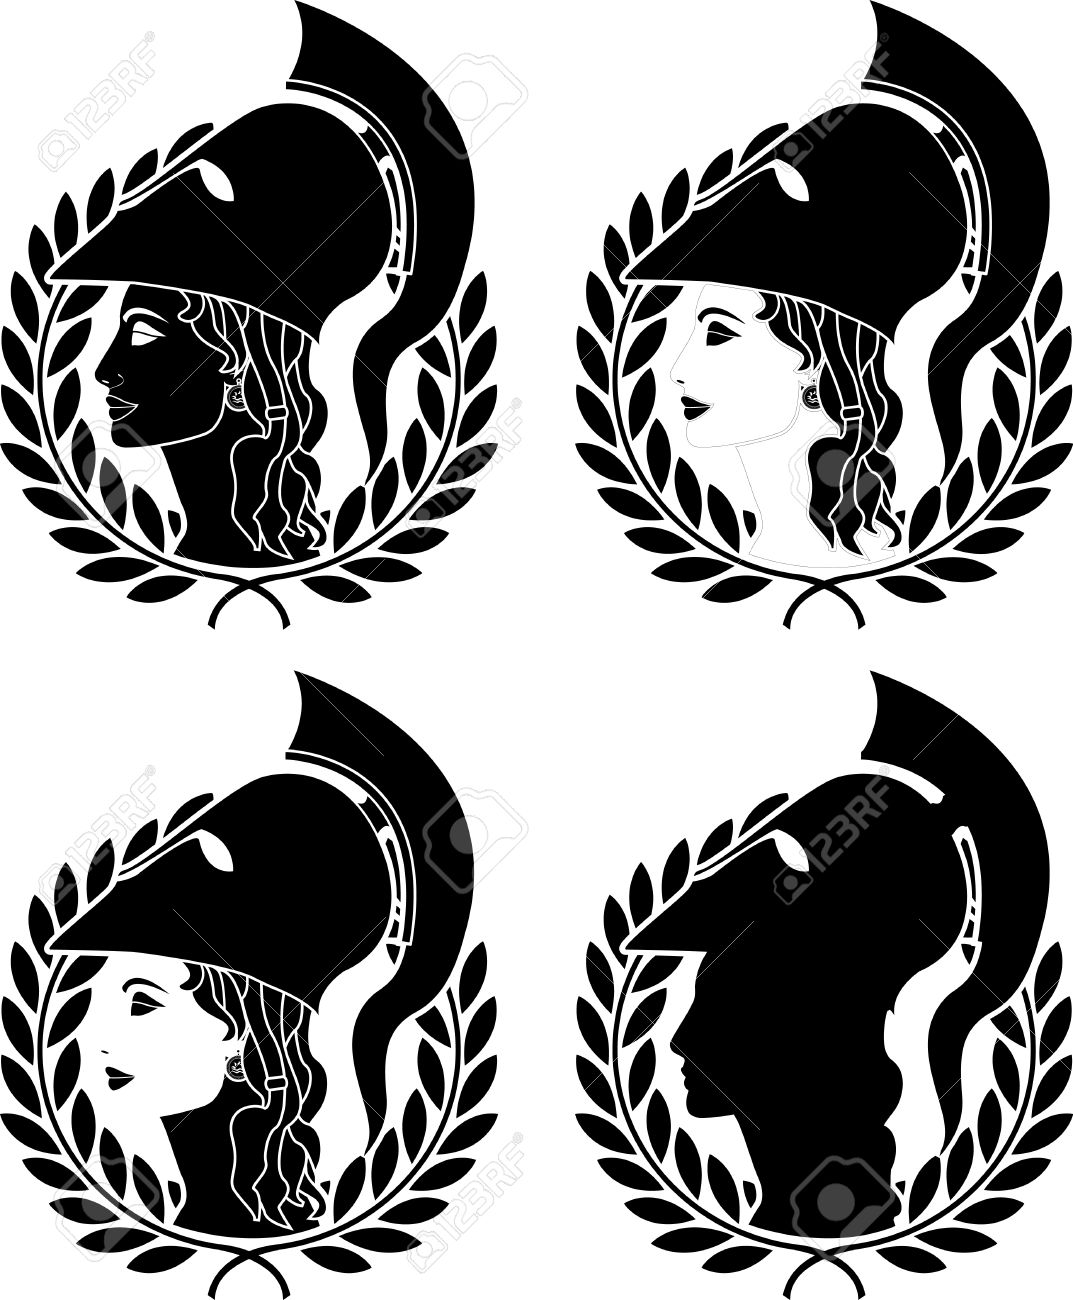 The images for athena the greek goddess symbol gallery images and information athena the greek goddess symbol biocorpaavc